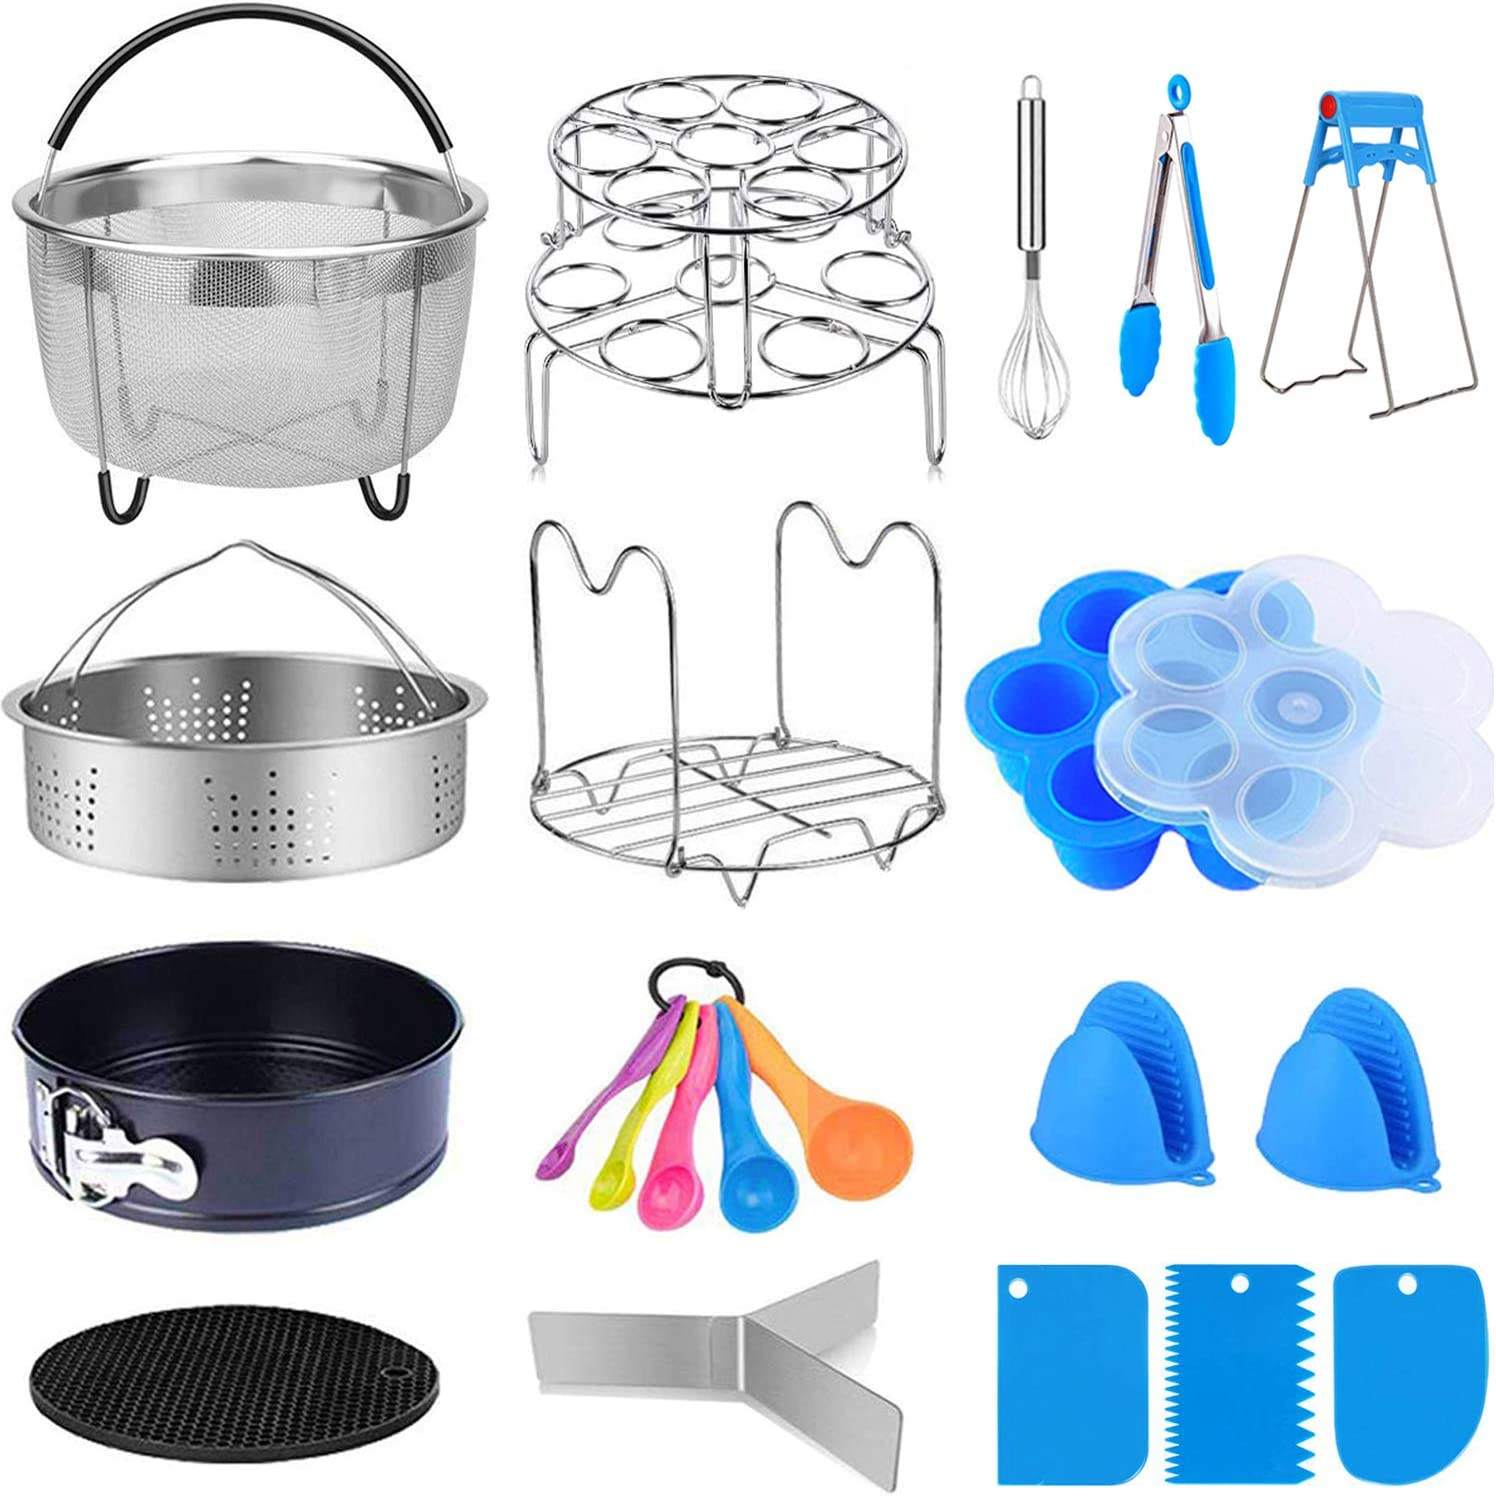 18 Pcs Accessories for Instant Pot 5,6,8 Qt, Pressure Cooker Accessories Set, Steamer Basket Kitchen Tong Plate Gripper Egg Beater Springform Pan